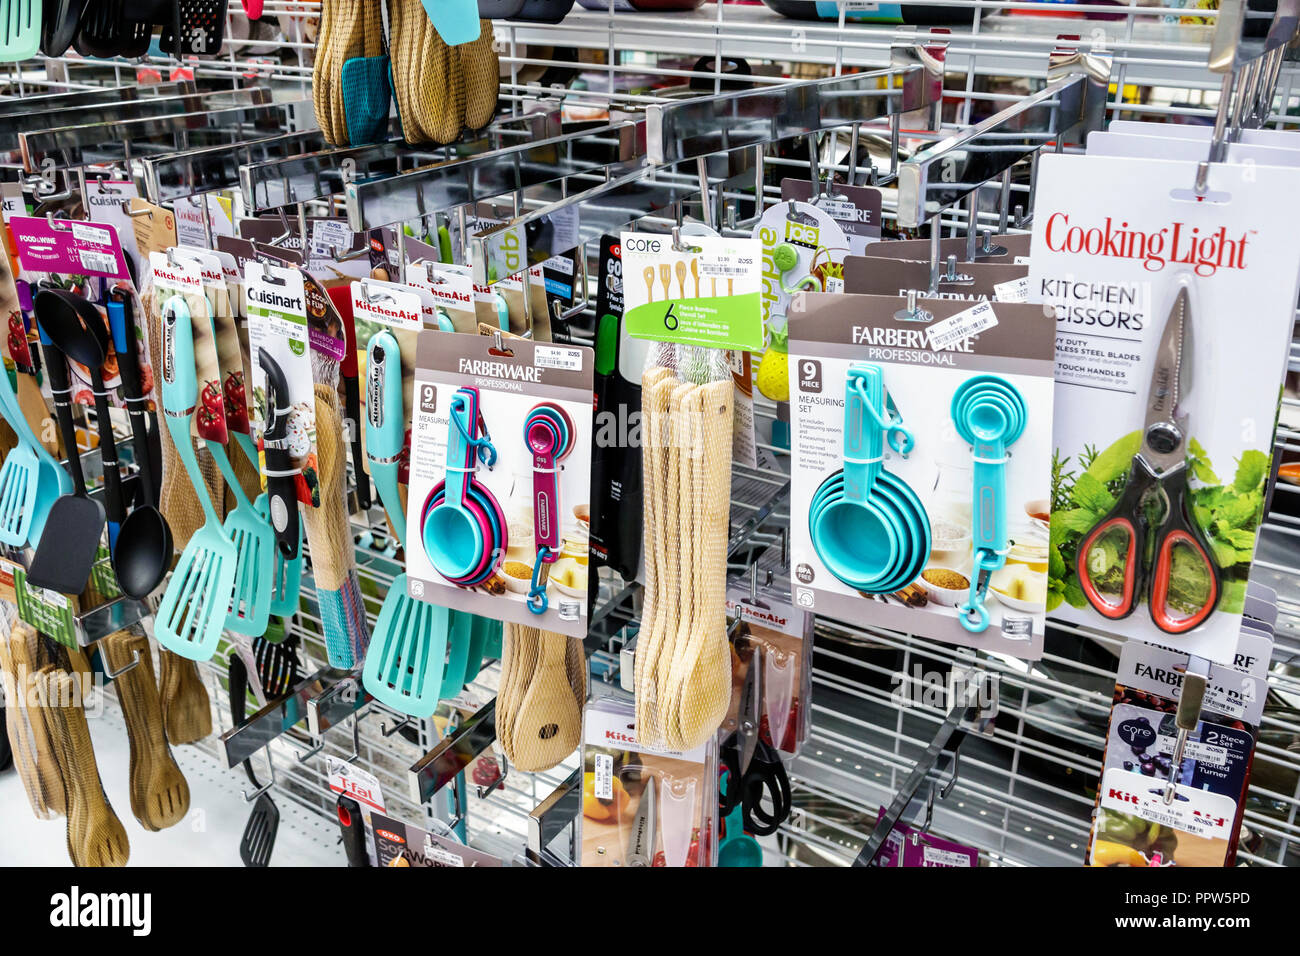 kitchen tools store ikea small miami beach florida ross department shopping inside display sale cooking utensils